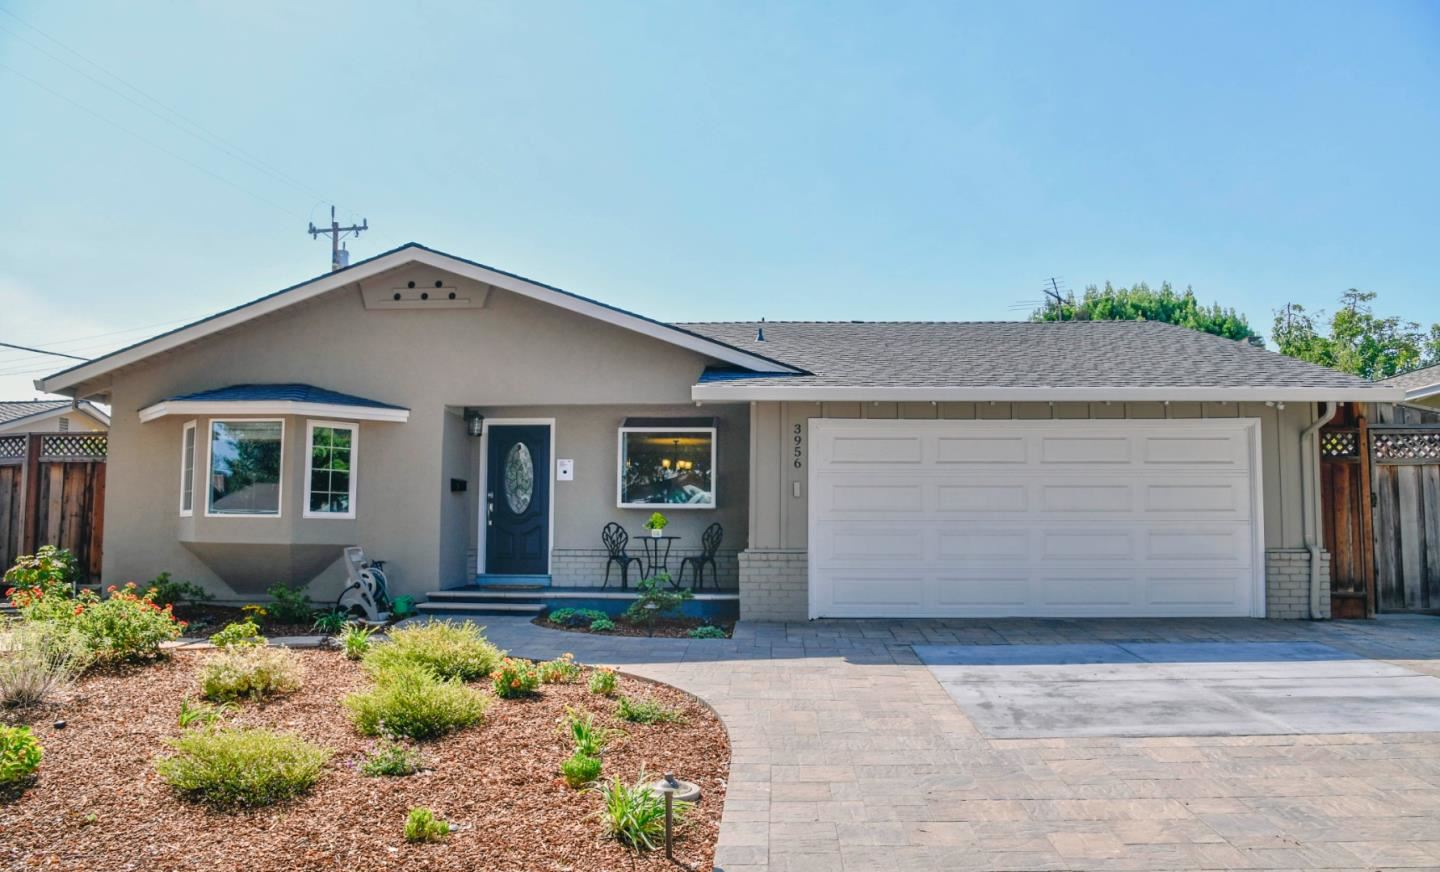 Photo for 3956 Via Salice, CAMPBELL, CA 95008 (MLS # ML81861917)